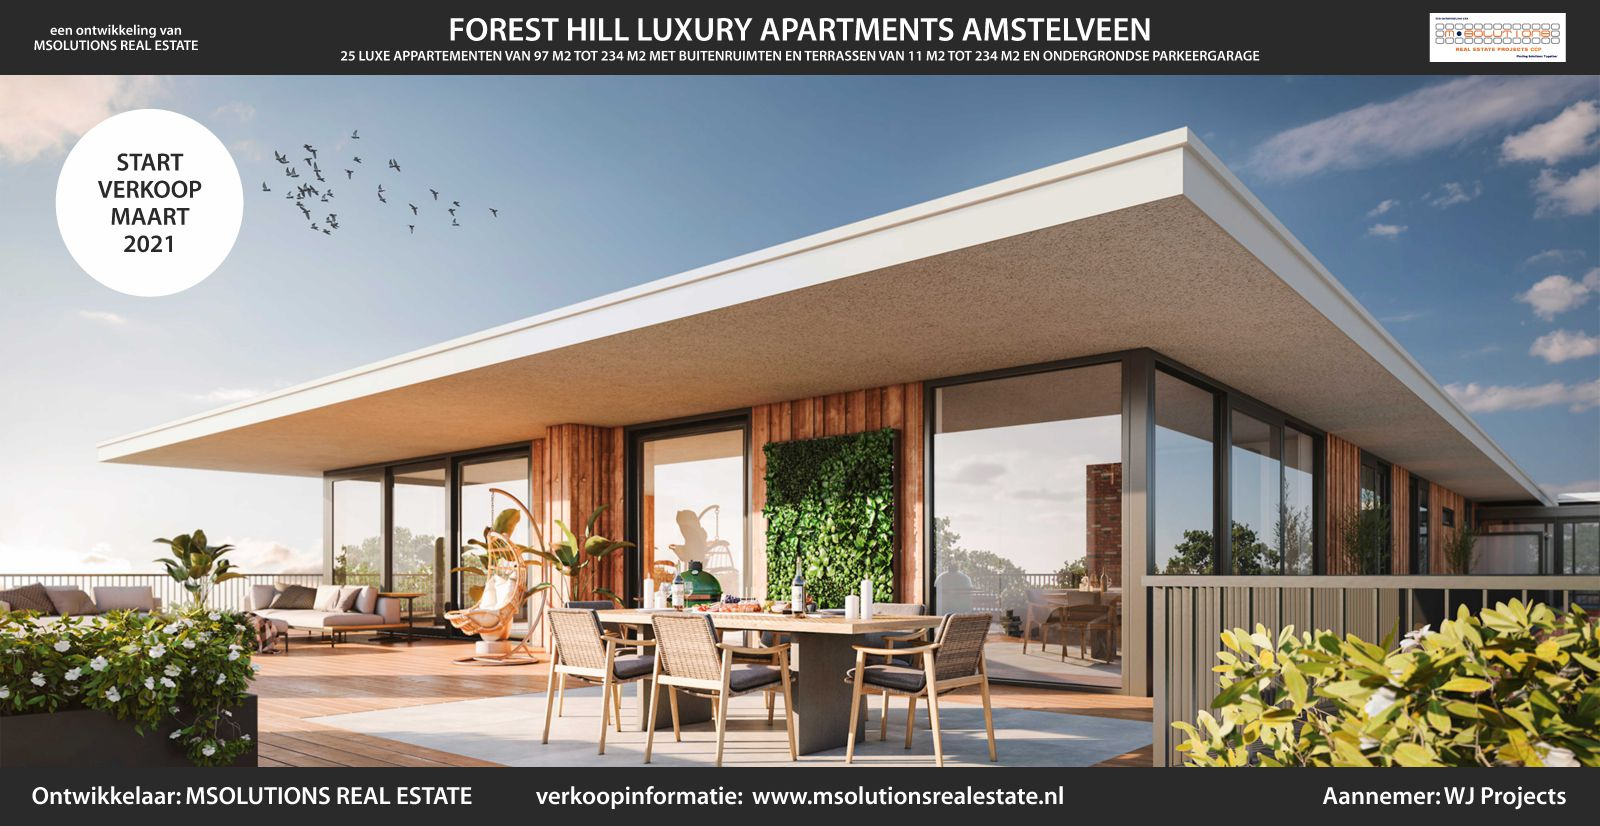 FOREST HILL LUXURY APARTMENTS AMSTELVEEN